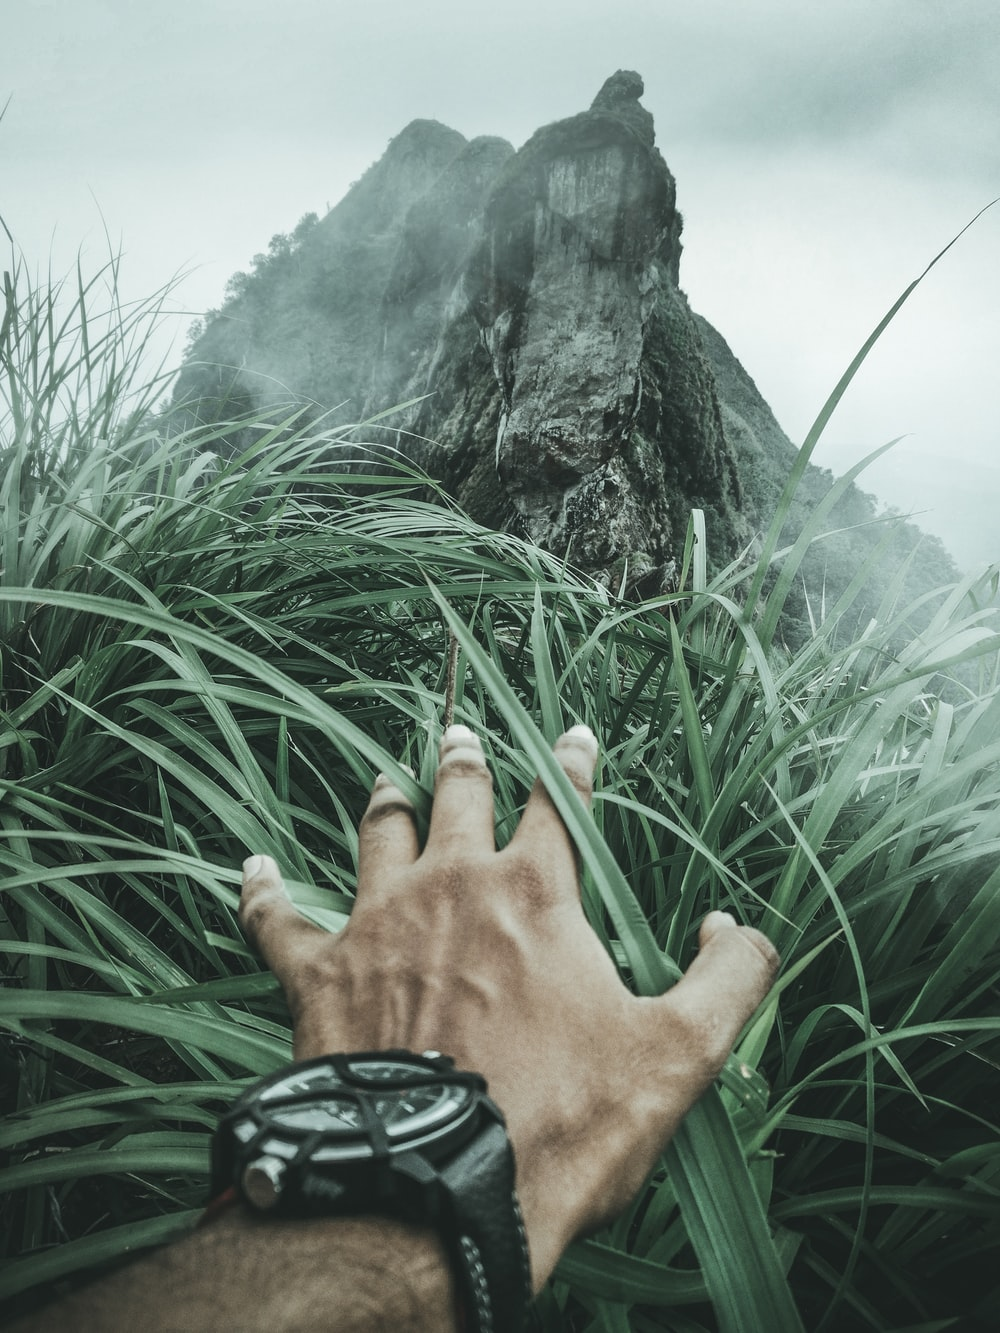 first person point of view of person clearing grass covering view showing mountain